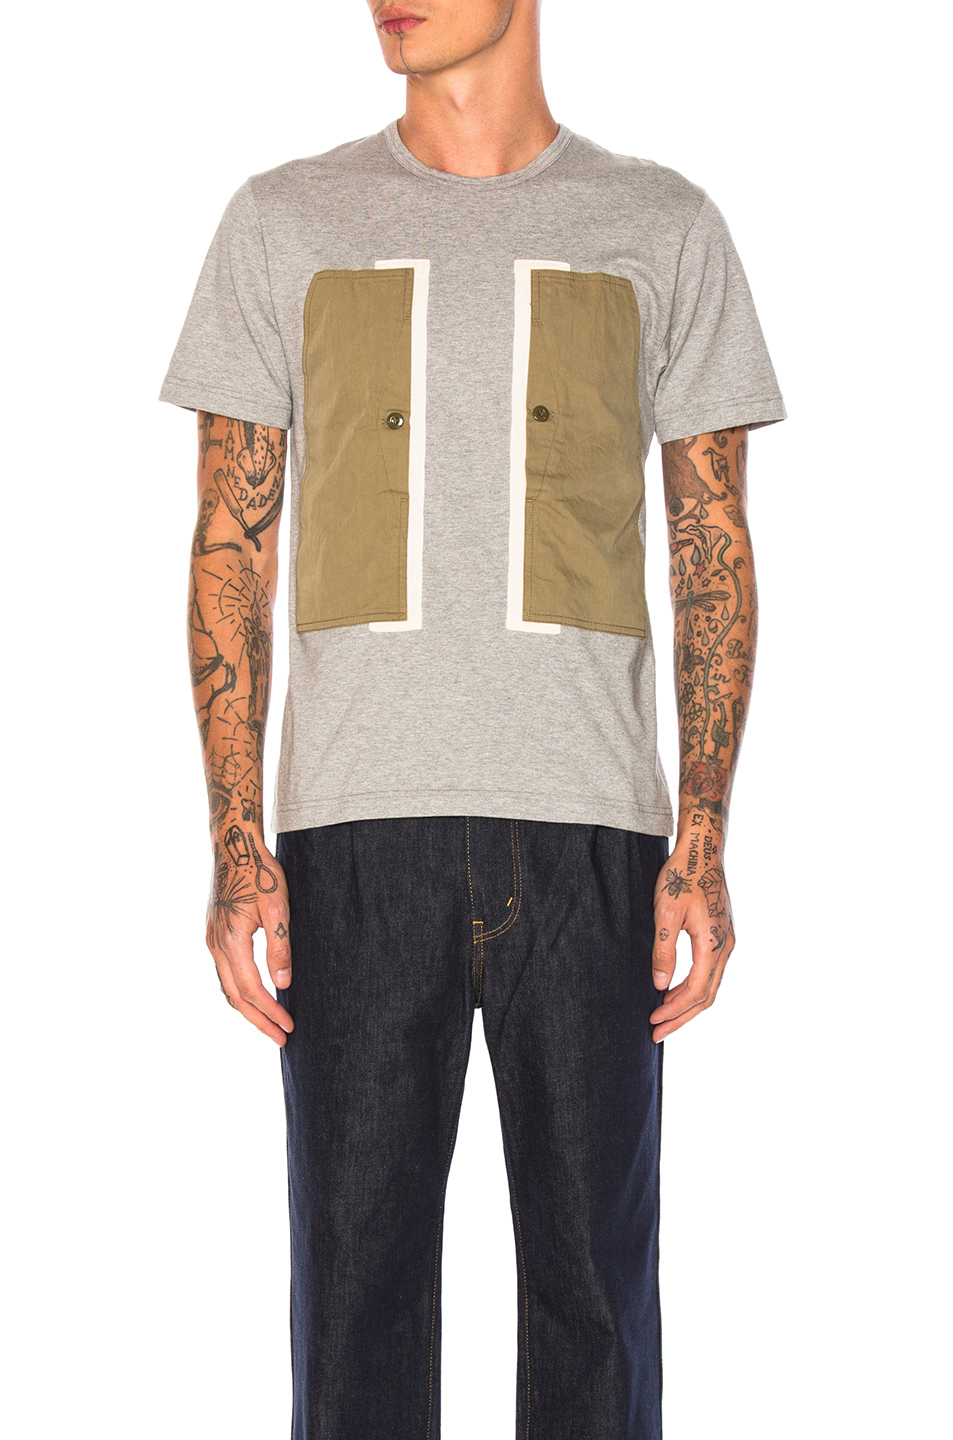 GANRYU Cotton Jersey T-Shirt in Gray